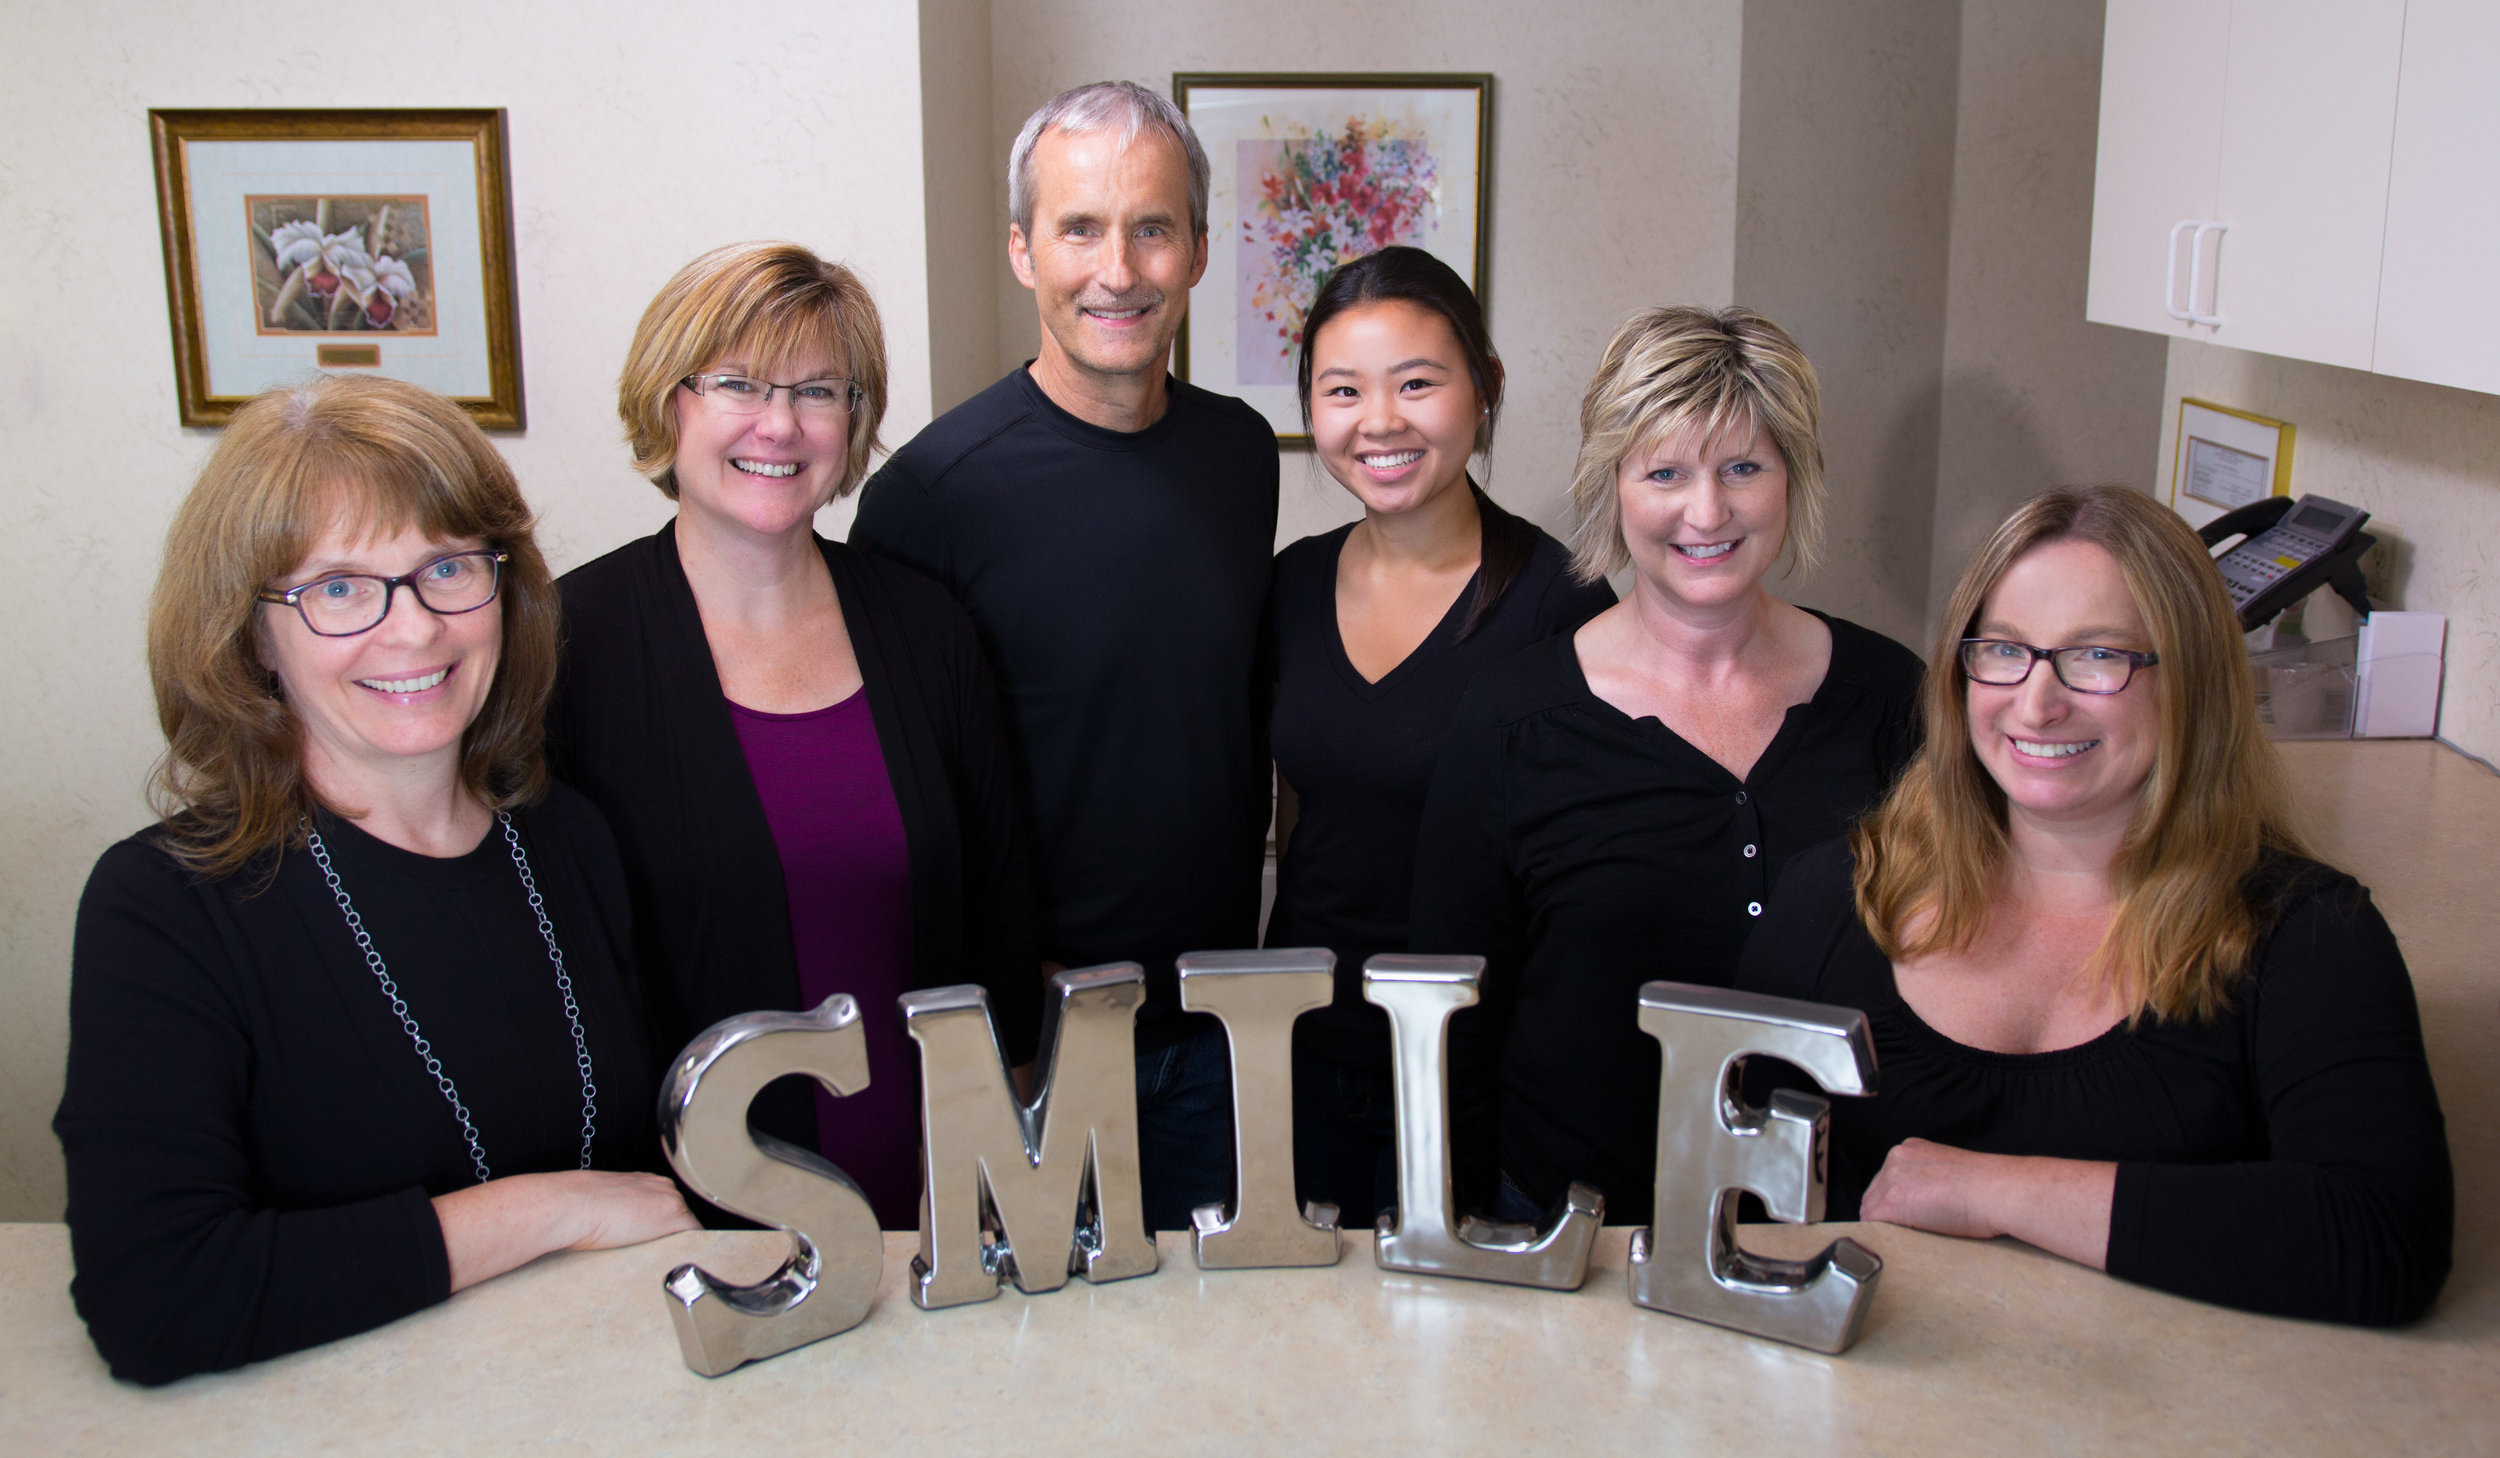 We are Dr. Wilson's team!   Becky, Office Manager / Amy, Patient Care Coordinator / Dr. Wilson / Jill, Assistant / Sheila, Treatment Coordinator / Jenny, Hygienist